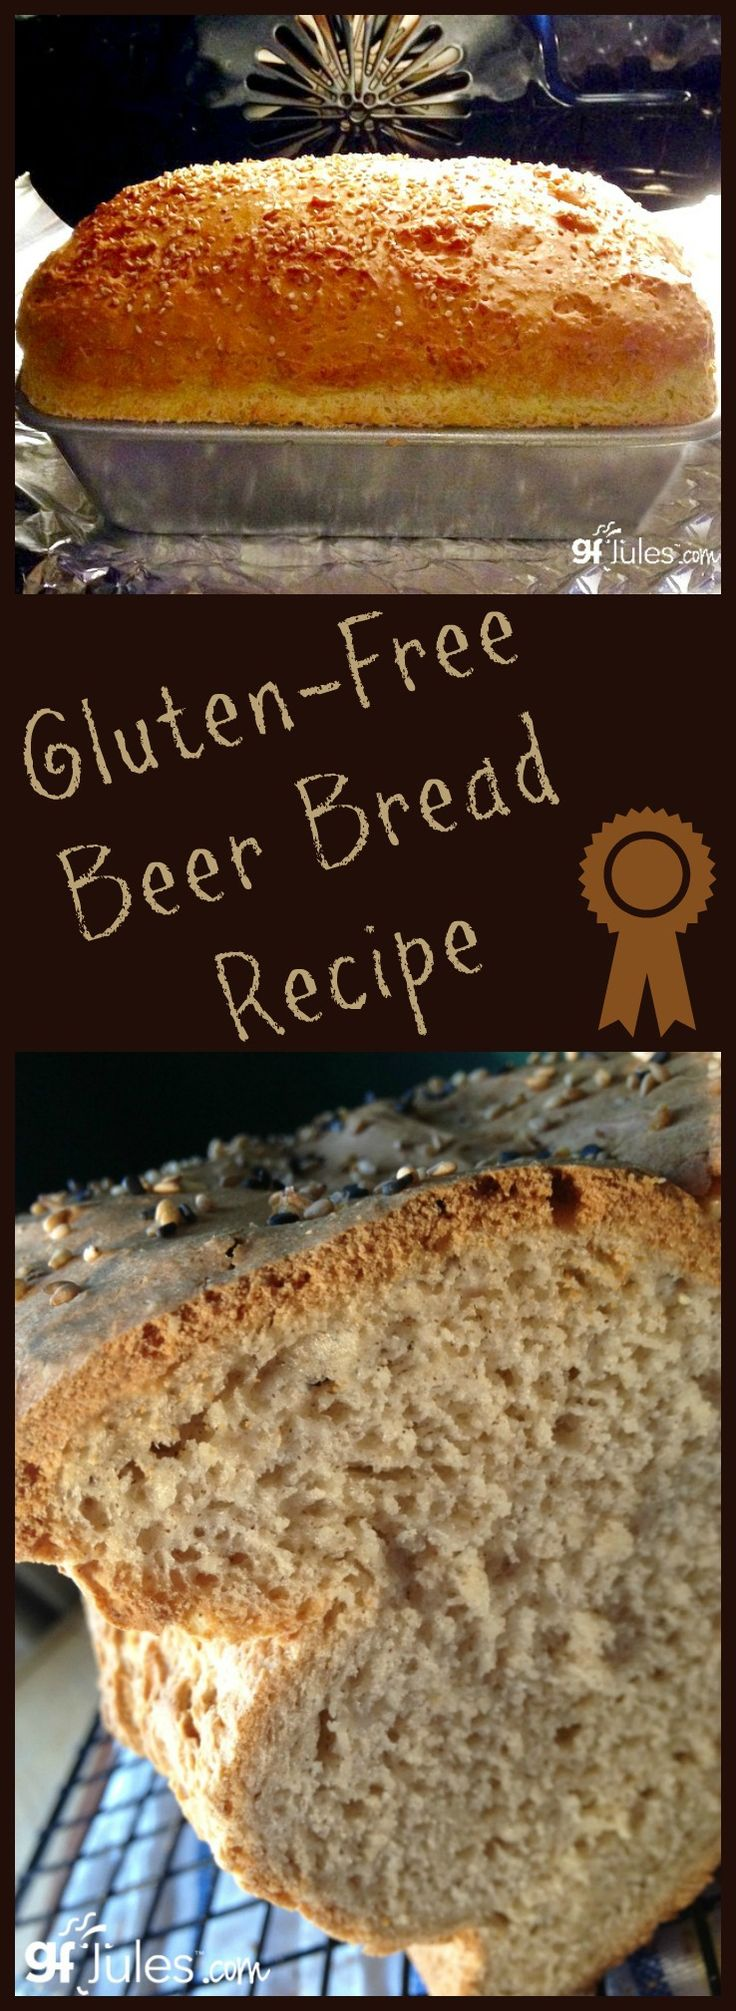 Gluten Free Beer Bread - this recipe makes soft, light and airy bread no one will believe is gluten-free and dairy-free! Use gingerale for alchol-free baking option. gfJules.com